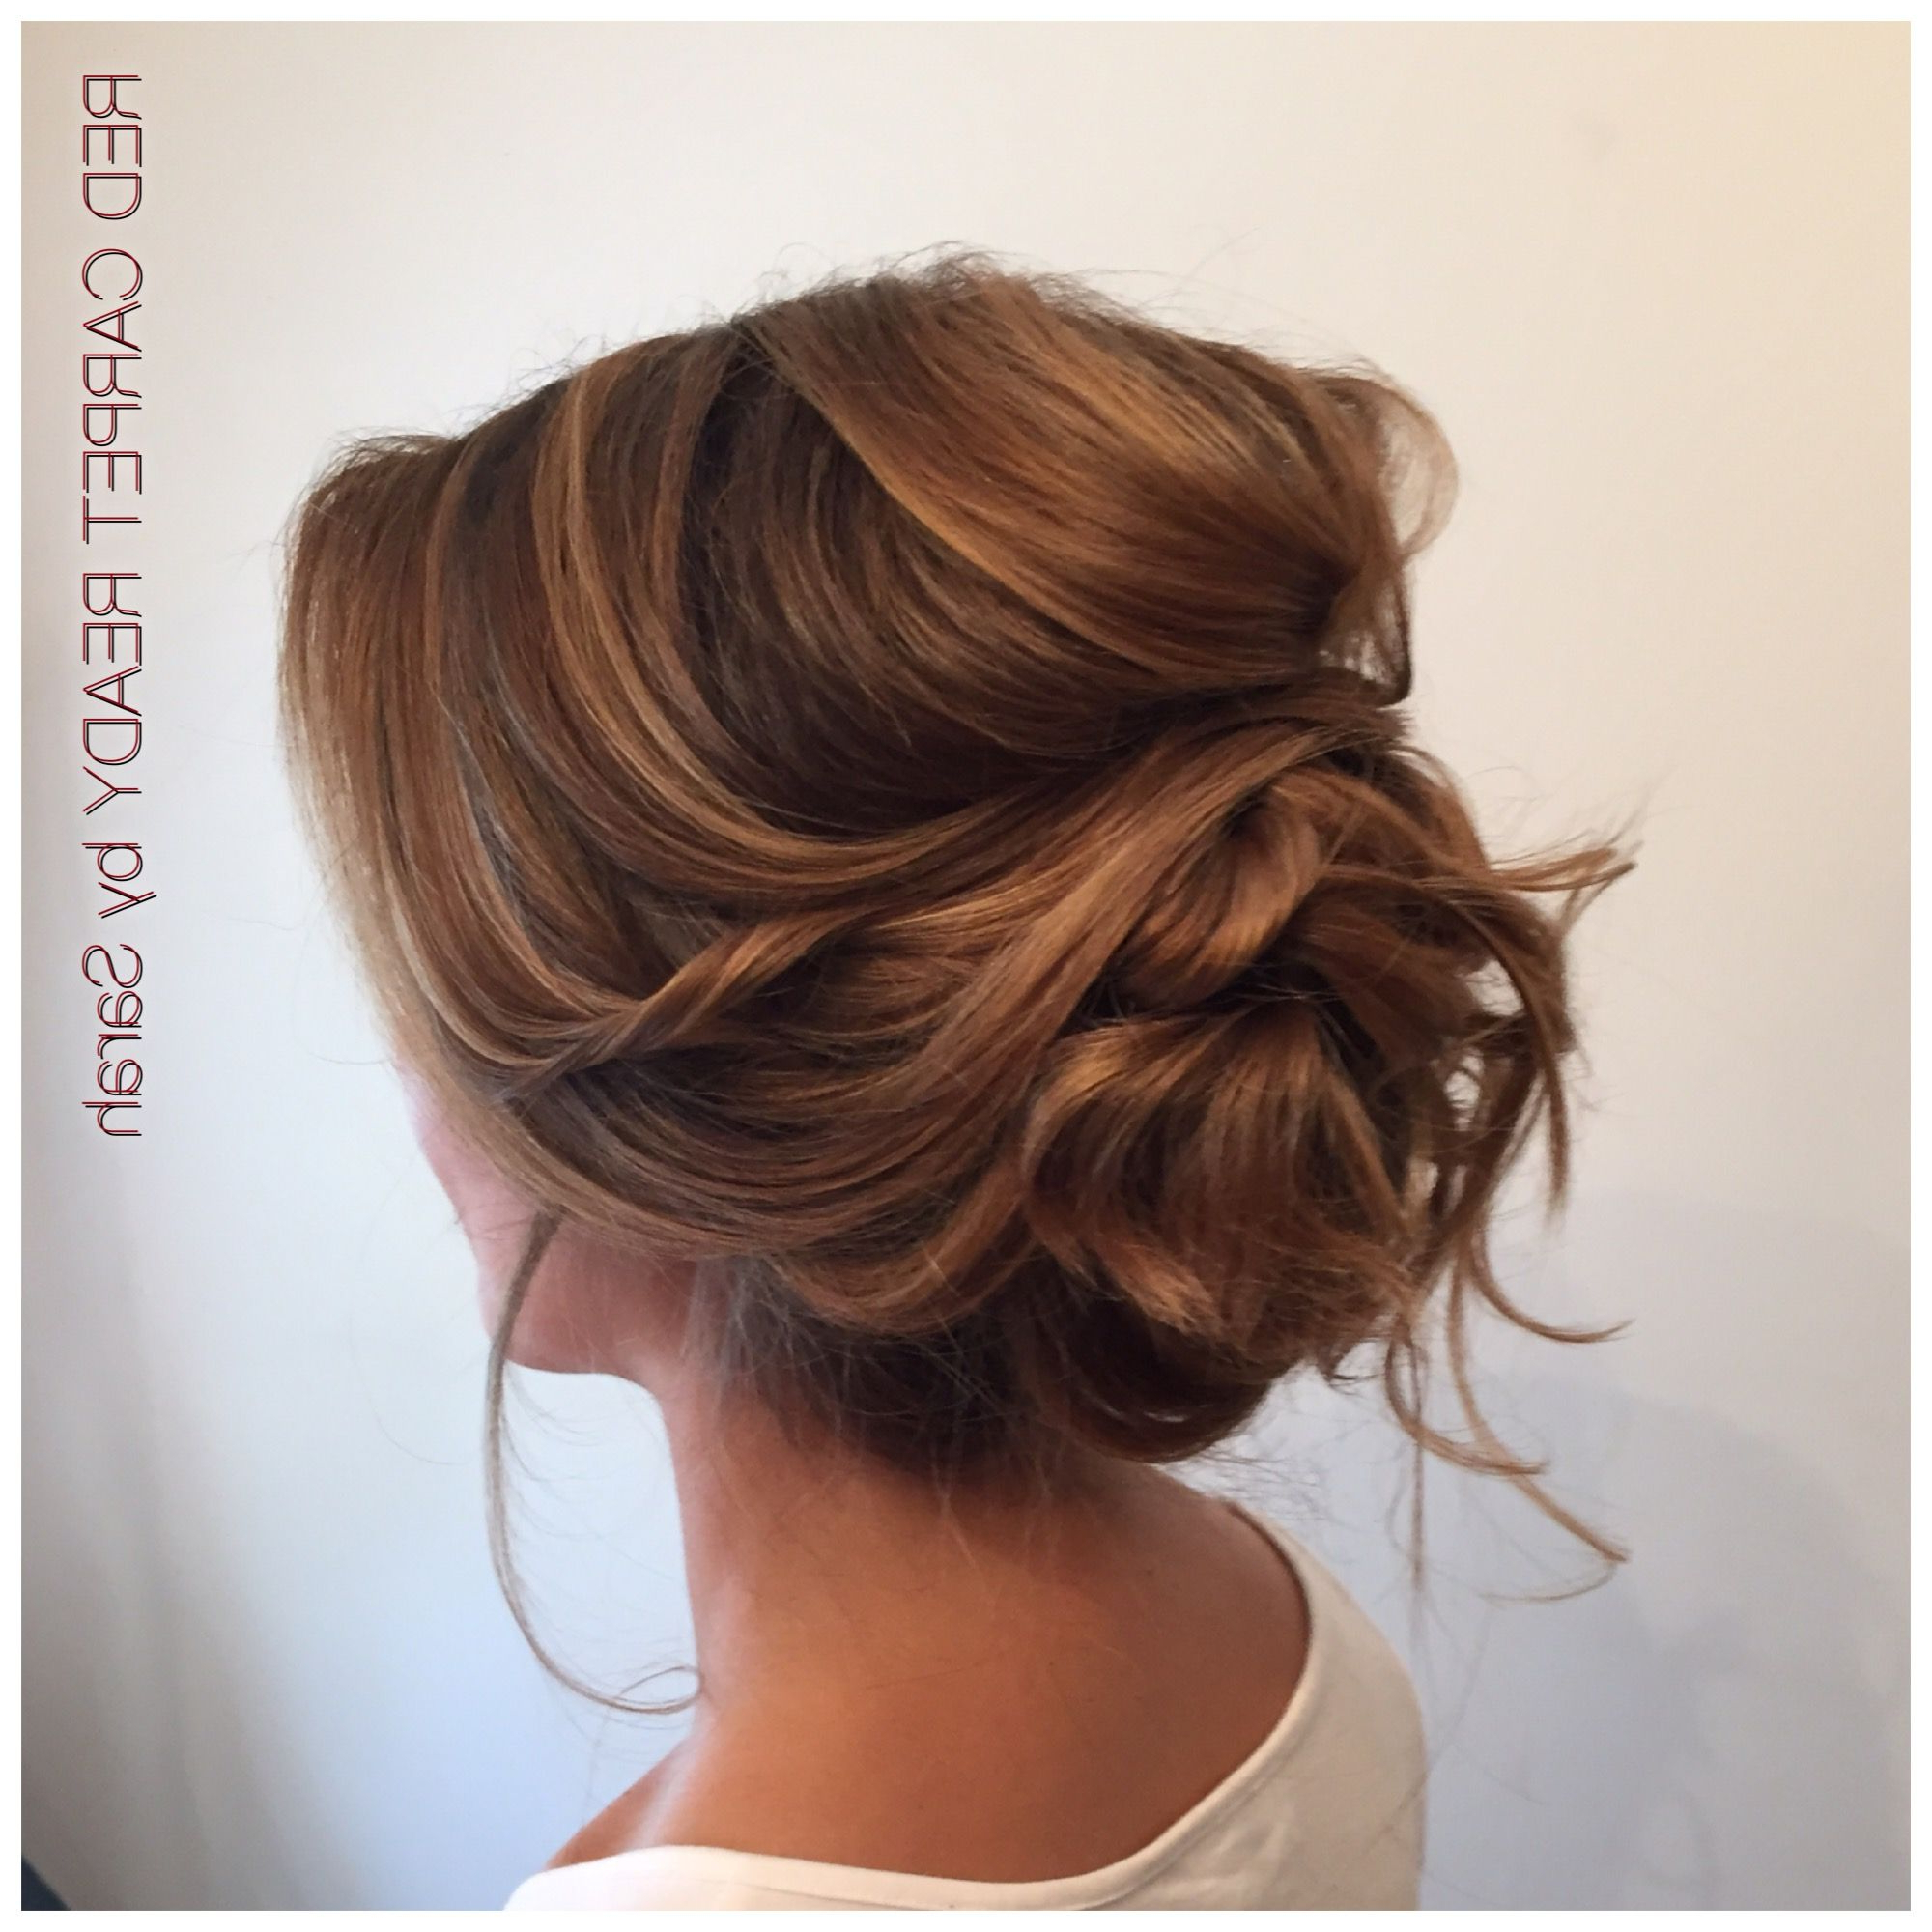 [%Latest Sleek And Voluminous Beehive Bridal Hairstyles Inside Soft Low Voluminous Updo Hairme | [Hair] Trends | Hair, Hair|Soft Low Voluminous Updo Hairme | [Hair] Trends | Hair, Hair With Regard To Most Recently Released Sleek And Voluminous Beehive Bridal Hairstyles%] (View 1 of 20)